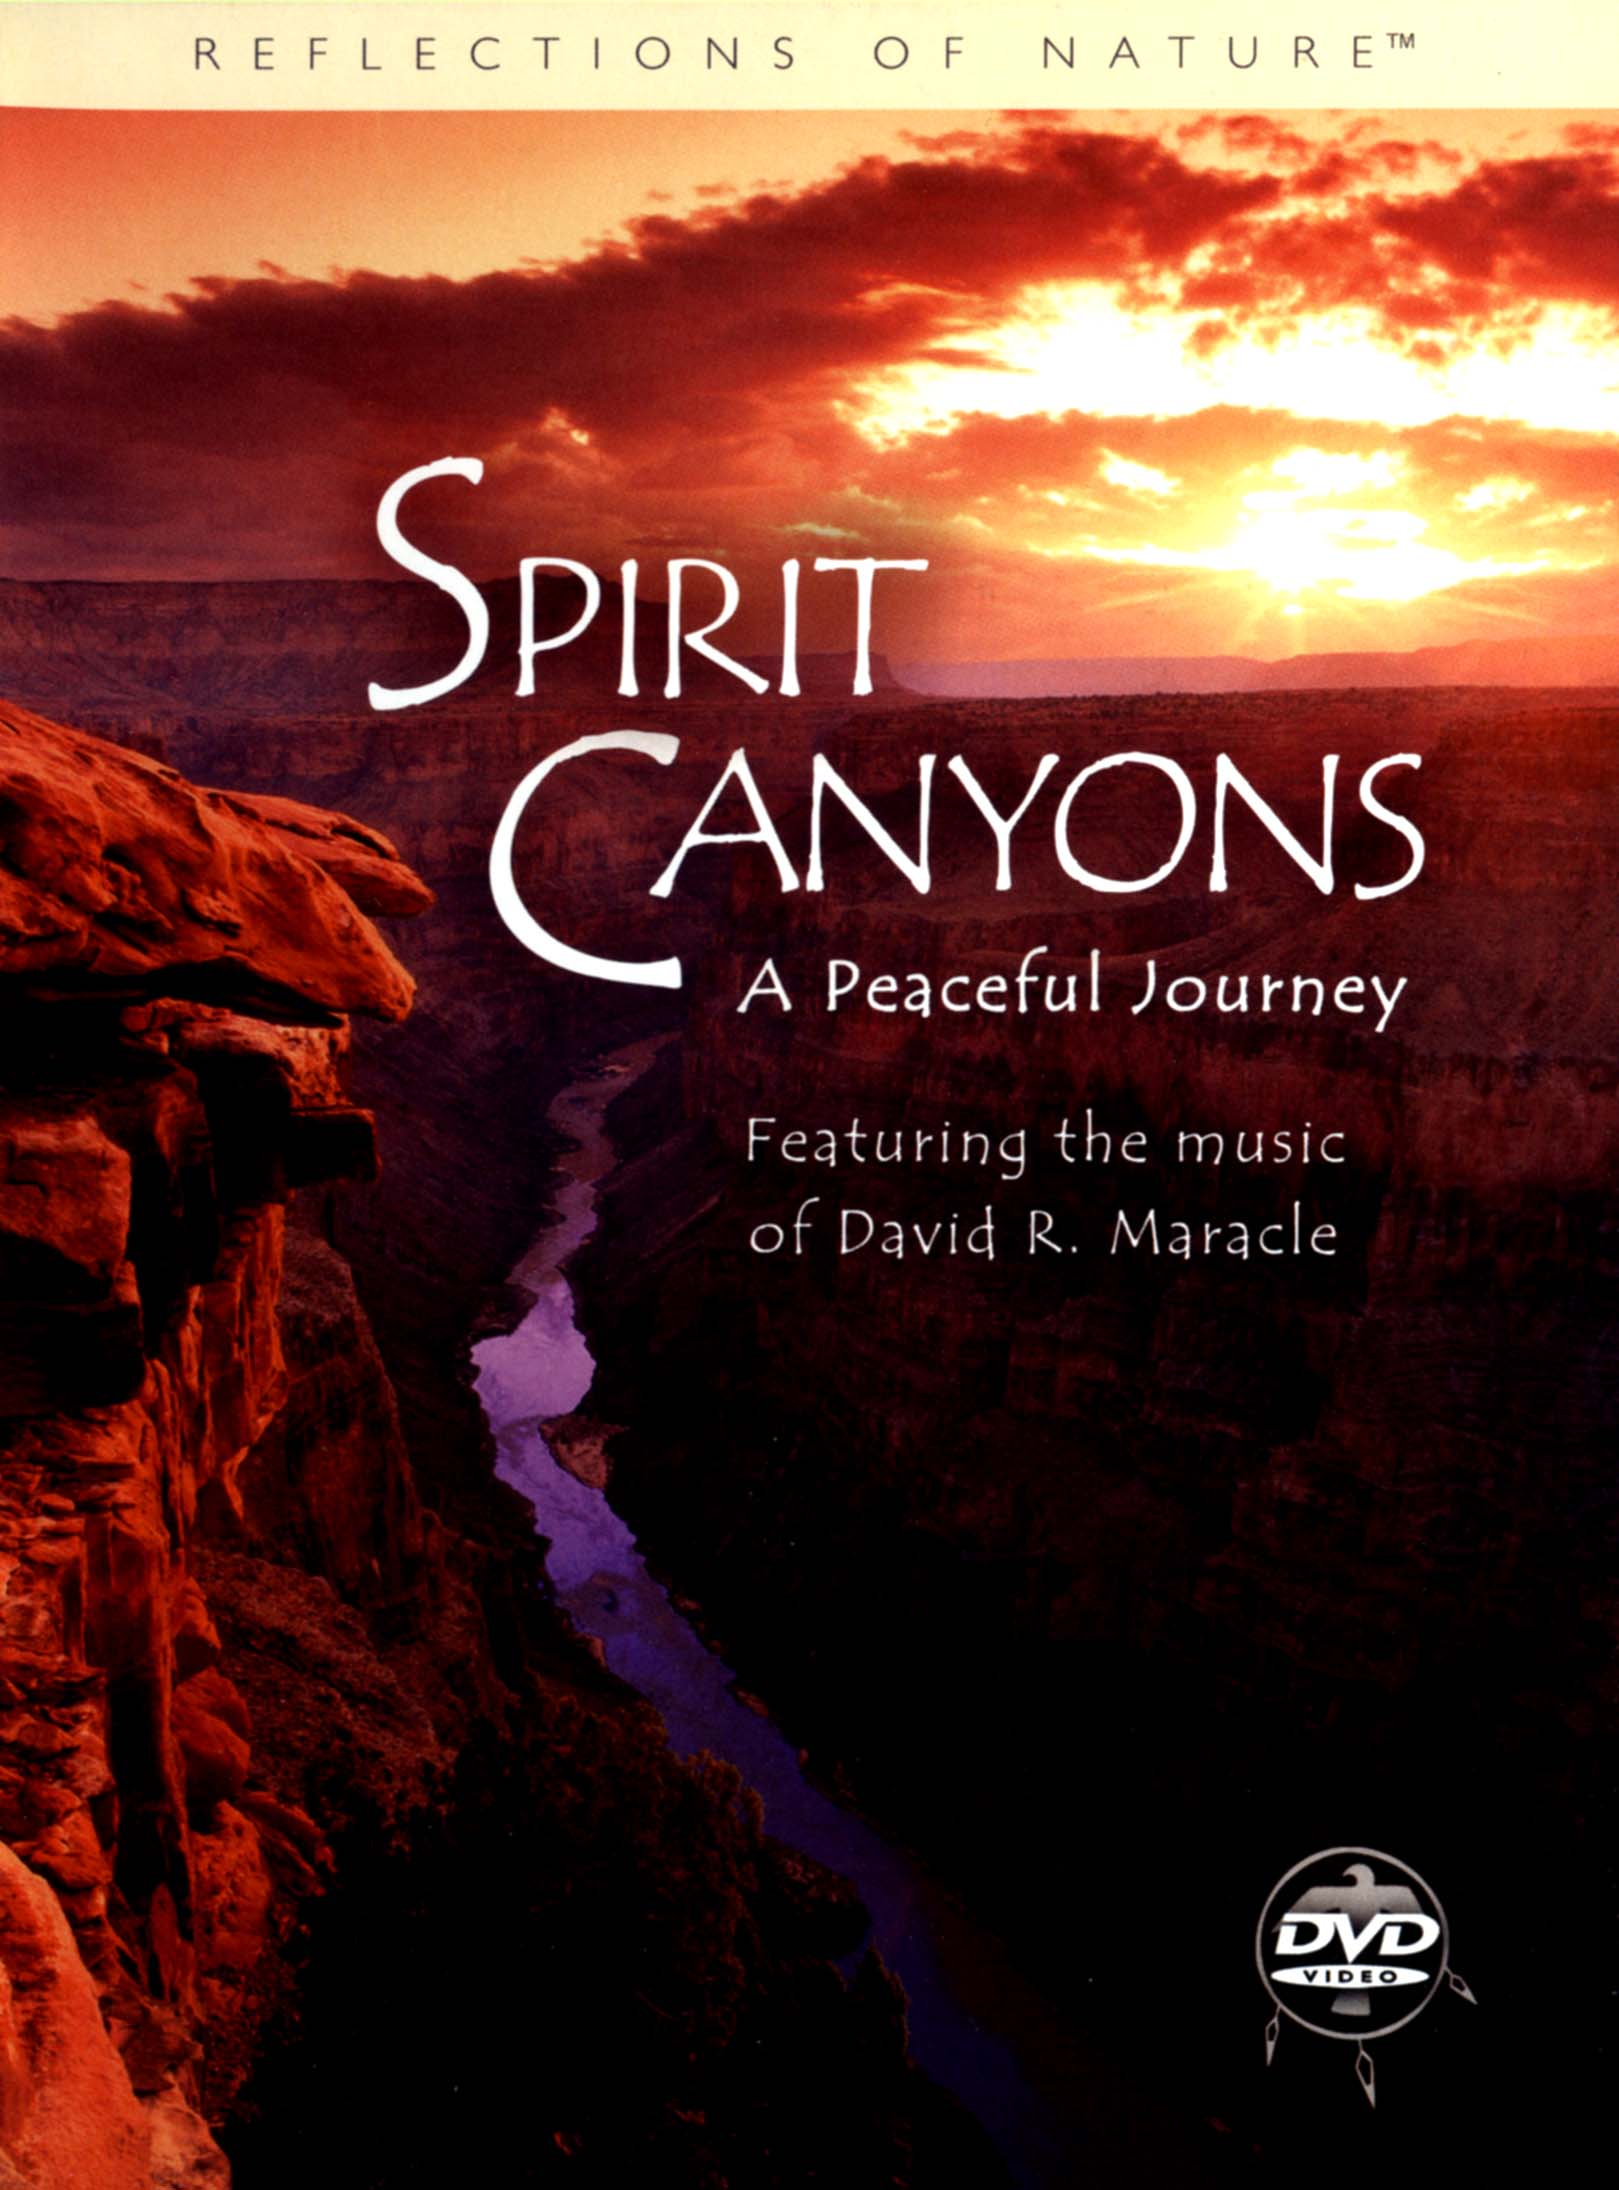 Reflections of Nature: Spirit Canyons